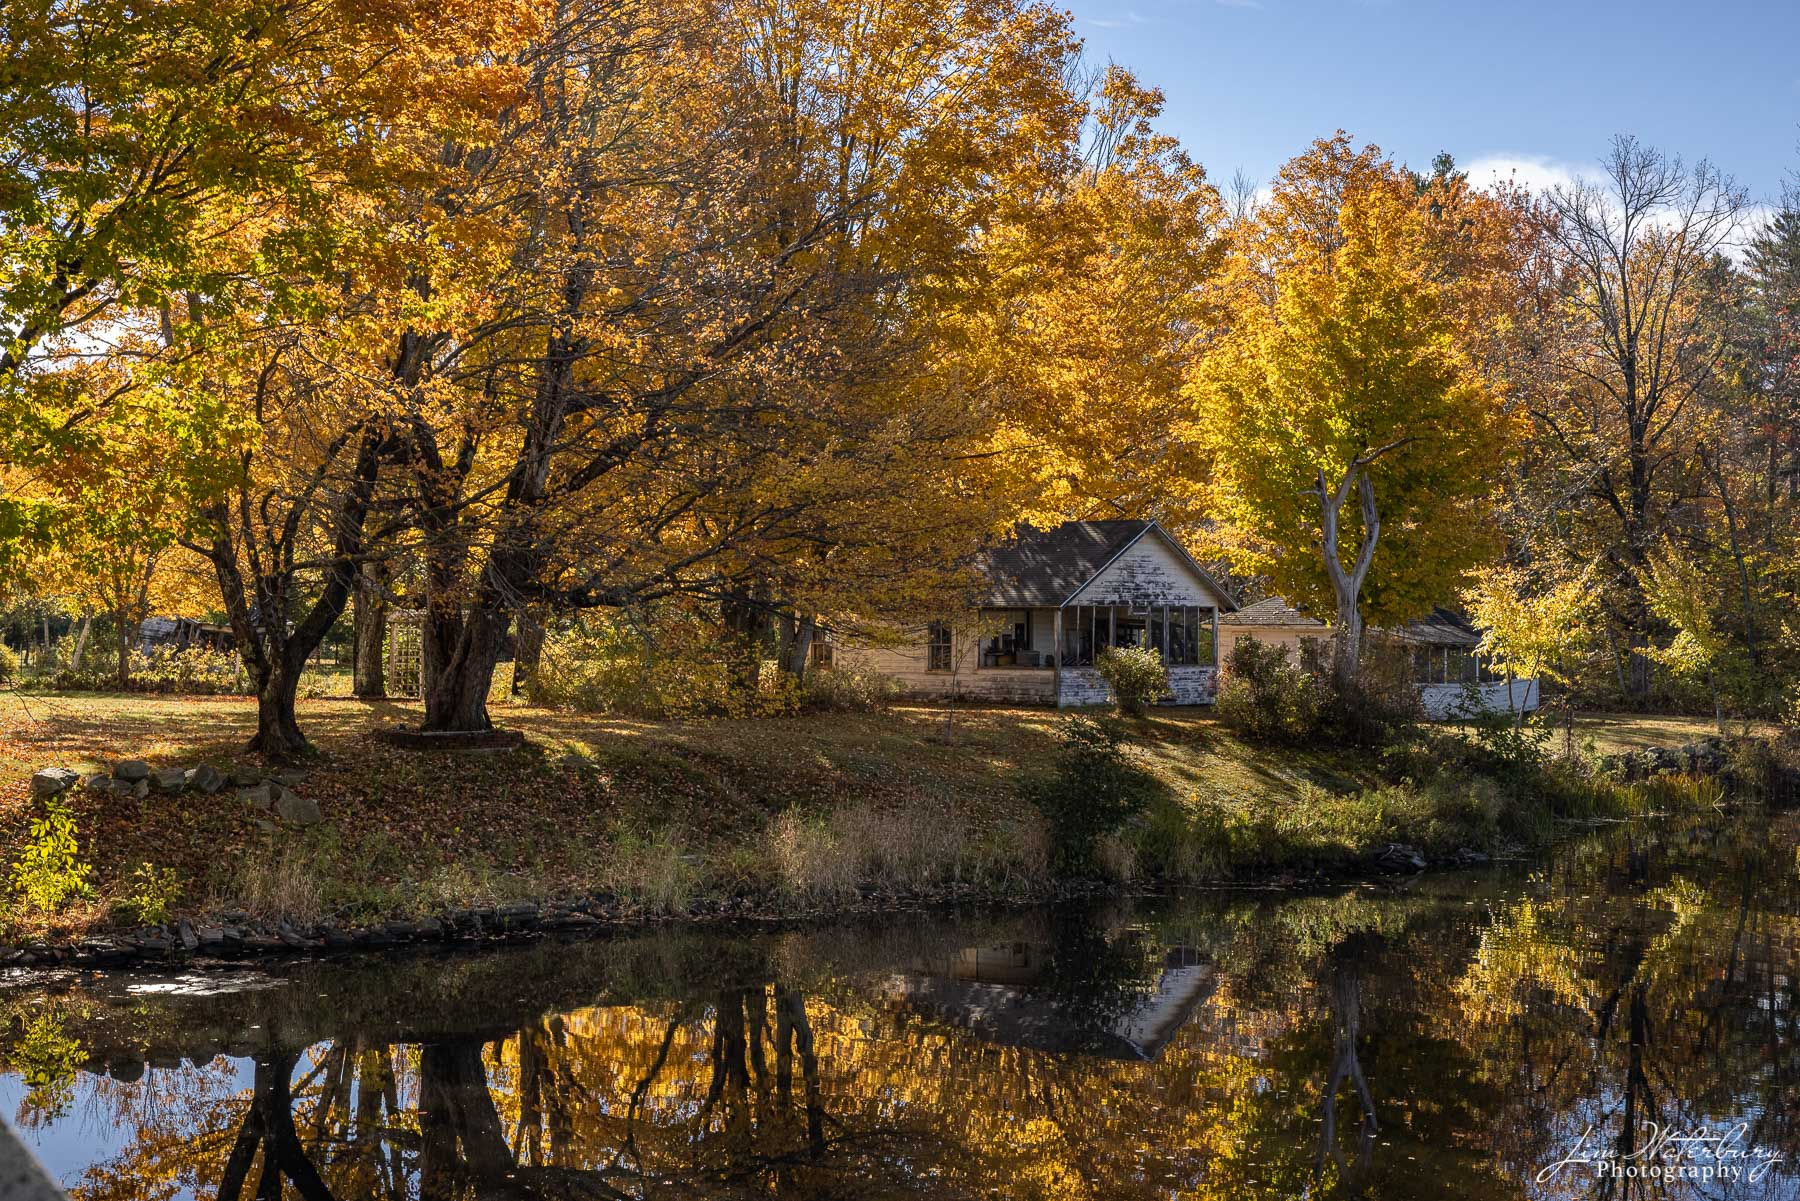 Small summer cottage on the shores of Damariscotta Lake, Maine, is surrounded by trees showing off brilliant fall colors.